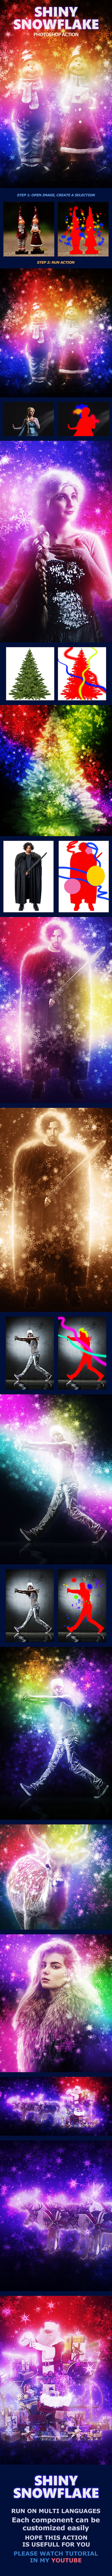 Shiny Snowflake - Photo Effects Actions